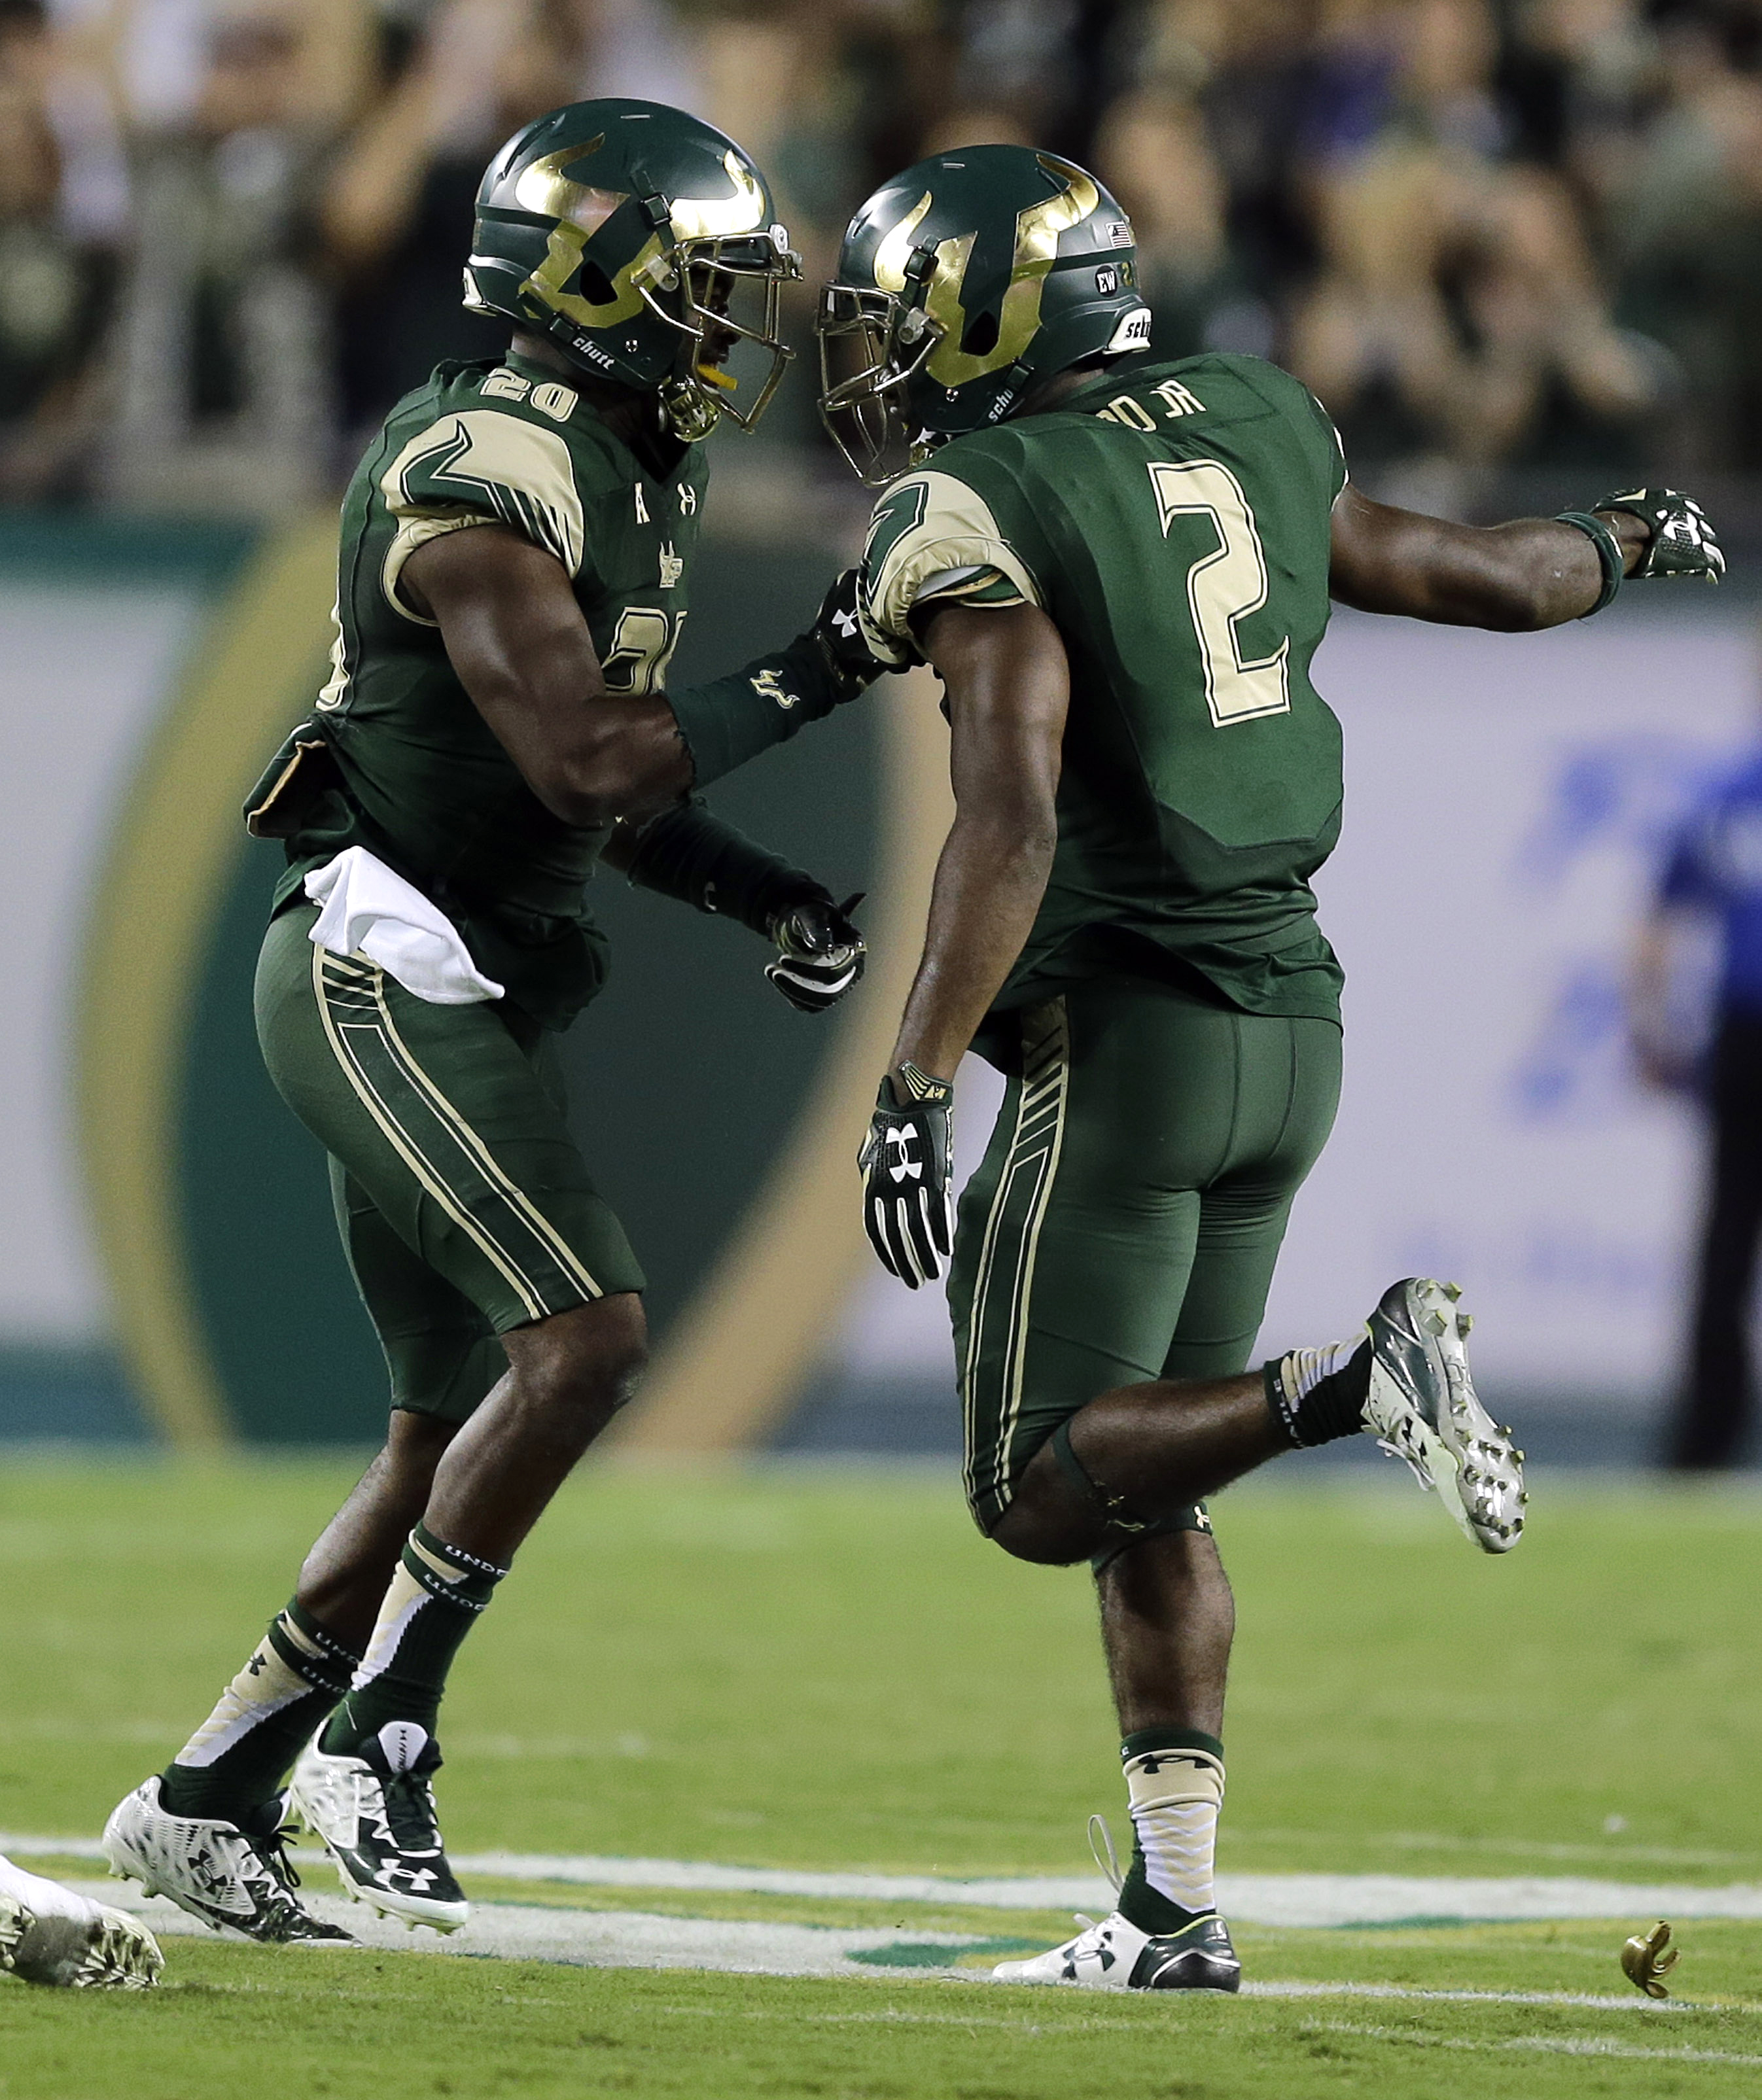 South Florida defensive back Jamie Byrd (2) celebrates with teammate Devin Abraham (20) after intercepting a pass by Cincinnati quarterback Gunner Kiel during the first quarter of an NCAA college football game Friday, Nov. 20, 2015, in Tampa, Fla. (AP Pho